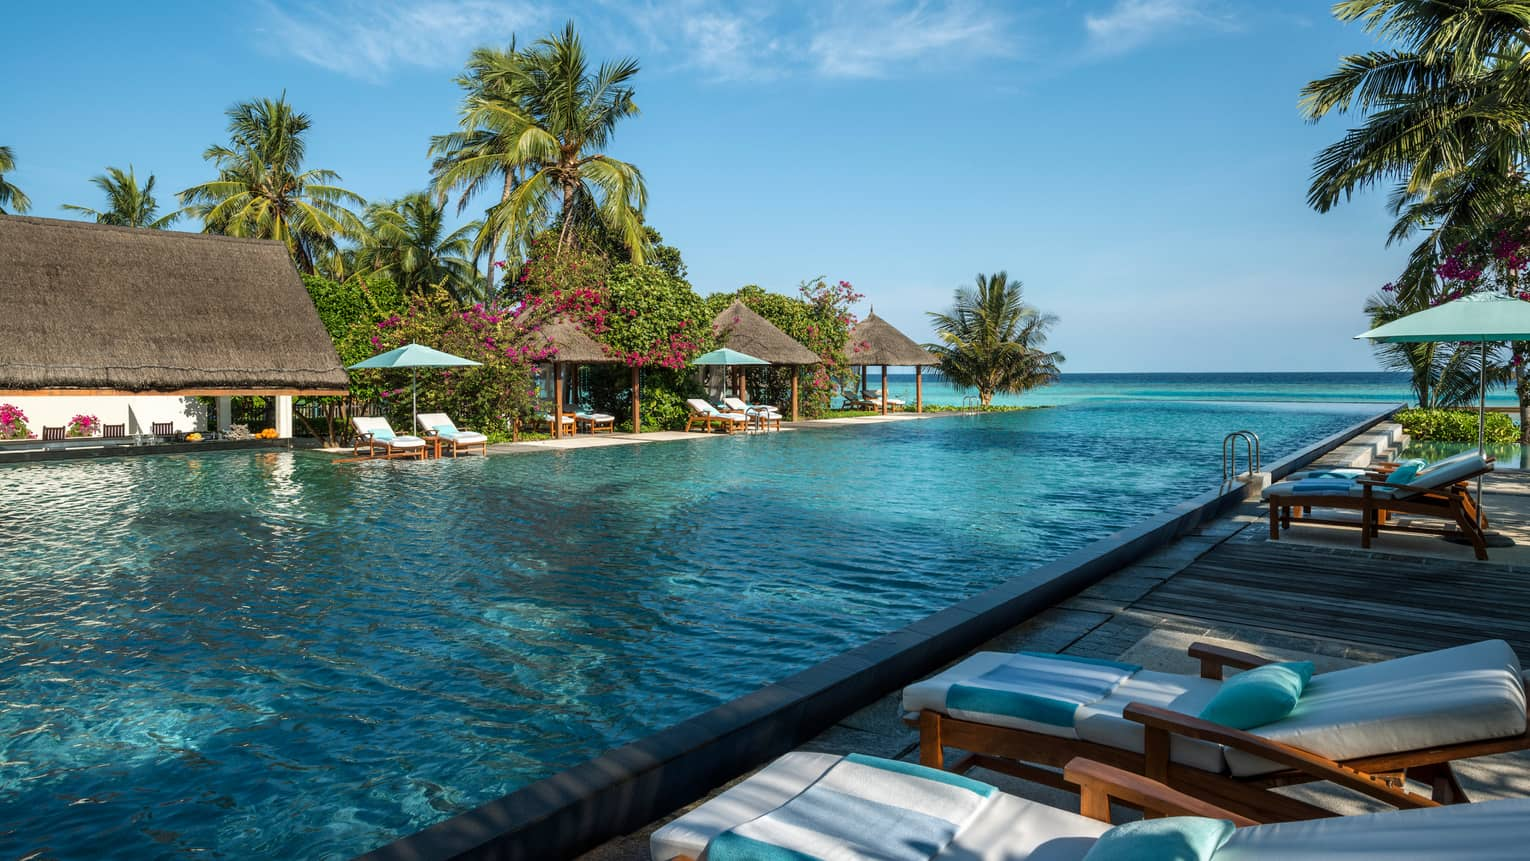 Lounge chairs, thatched roof cabanas, palm trees along outdoor swimming pool deck